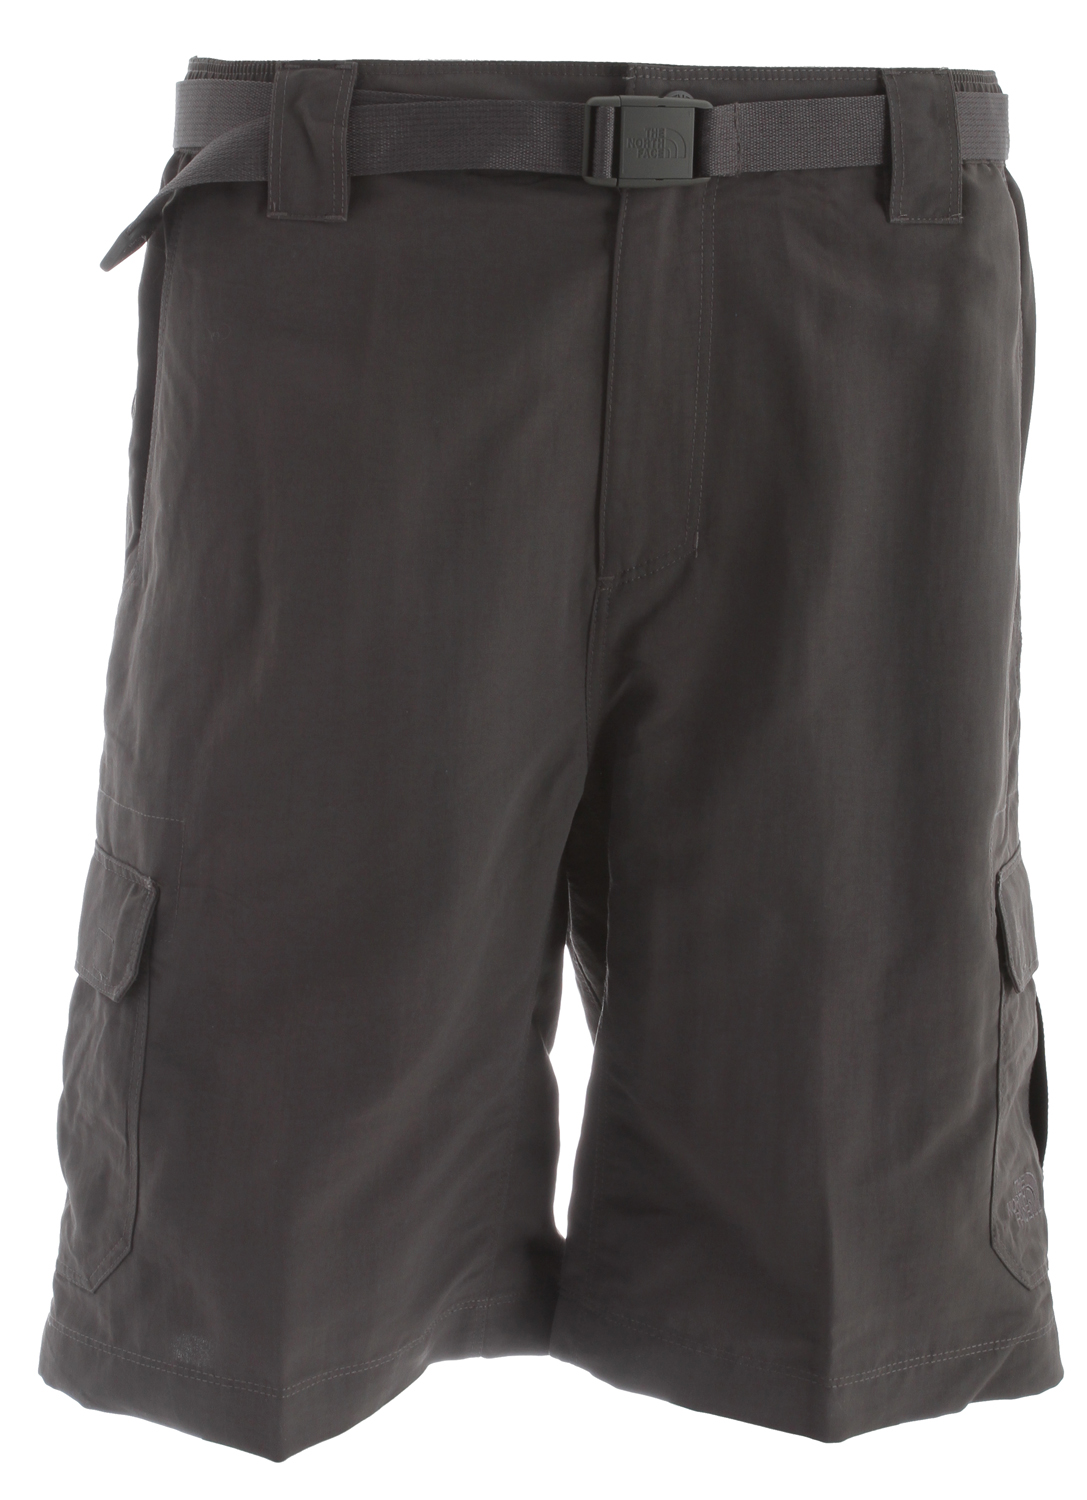 Camp and Hike Core hiking short features a rugged, abrasion-resistant, DWR treated fabric.Key Features of the The North Face Paramount Cargo Shorts: Fabric: 177 g/m 100% nylon faille (bluesign approved fabric) Durable, midweight, abrasion-resistant nylon DWR finish Ultraviolet protection factor (UPF) 30 Quick-drying Partial elastic waist with belt loops and belt included Side cargo pockets Gusseted crotch for increased mobility Zip back pocket - $34.95